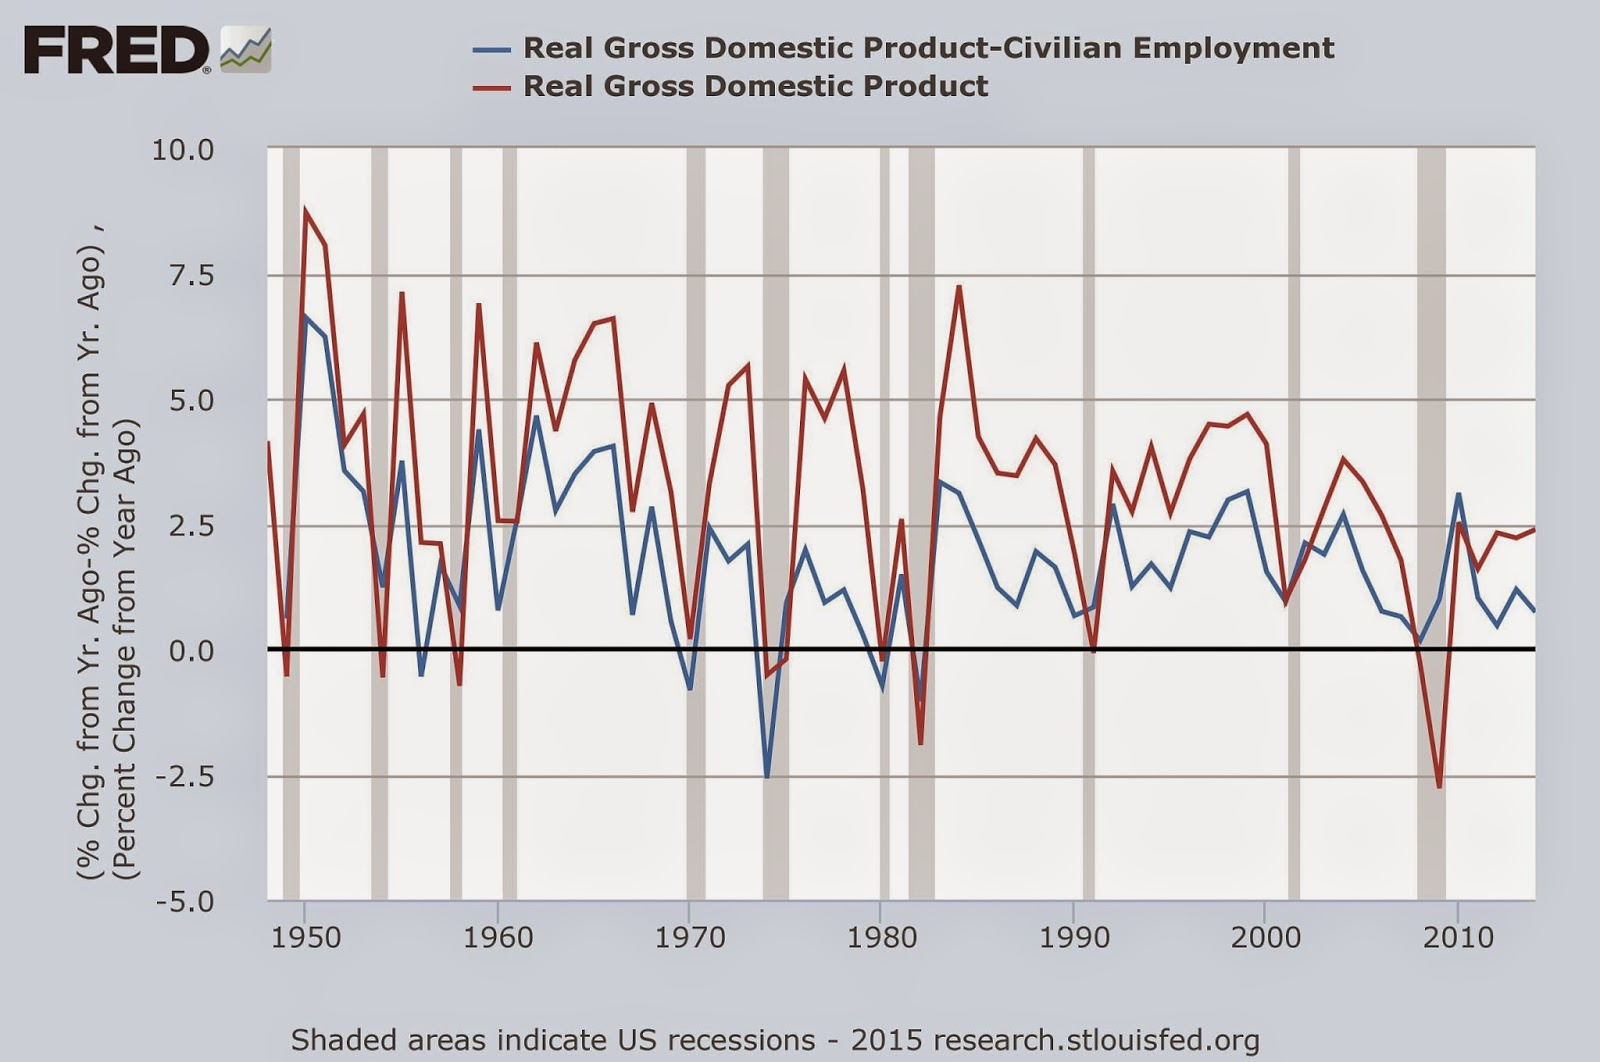 http://research.stlouisfed.org/fredgraph.jpg?hires=1&type=image/jpeg&chart_type=line&recession_bars=on&log_scales=&bgcolor=%23e1e9f0&graph_bgcolor=%23ffffff&fo=verdana&ts=12&tts=12&txtcolor=%23444444&show_legend=yes&show_axis_titles=yes&drp=0&cosd=1948-01-16%2C1948-01-16&coed=2014-12-17%2C2014-12-17&width=670&height=445&stacking=&range=Custom&mode=fred&id=CE16OV_GDPC1%2CGDPC1&transformation=pc1_pc1%2Cpc1&nd=_%2C&ost=-99999_-99999%2C-99999&oet=99999_99999%2C99999&scale=left%2Cleft&line_color=%234572a7%2C%23aa4643&line_style=solid%2Csolid&lw=2%2C2&mark_type=none%2C&mw=1%2C1&mma=0%2C0&fml=b-a%2Ca&fgst=lin%2Clin&fgsnd=2007-12-01%2C2007-12-01&fq=Annual%2CAnnual&fam=avg%2Cavg&vintage_date=%2C&revision_date=%2C